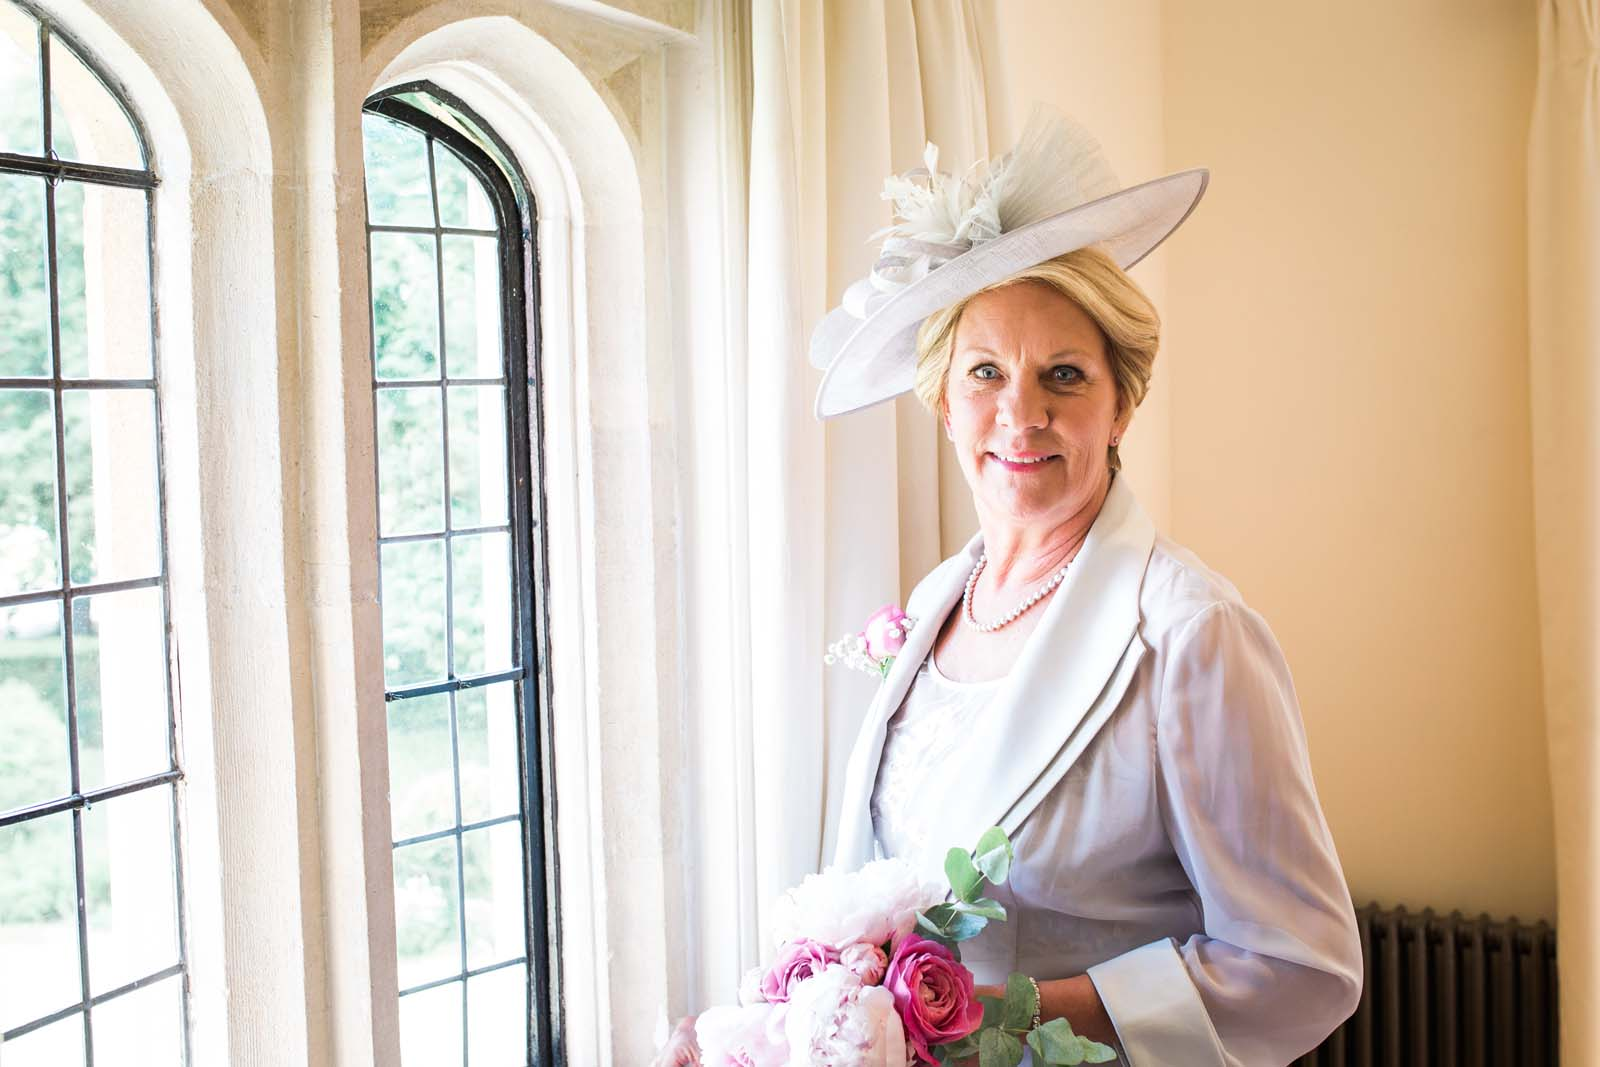 Notley Abbey wedding in Buckinghamshire - mother of the Bride